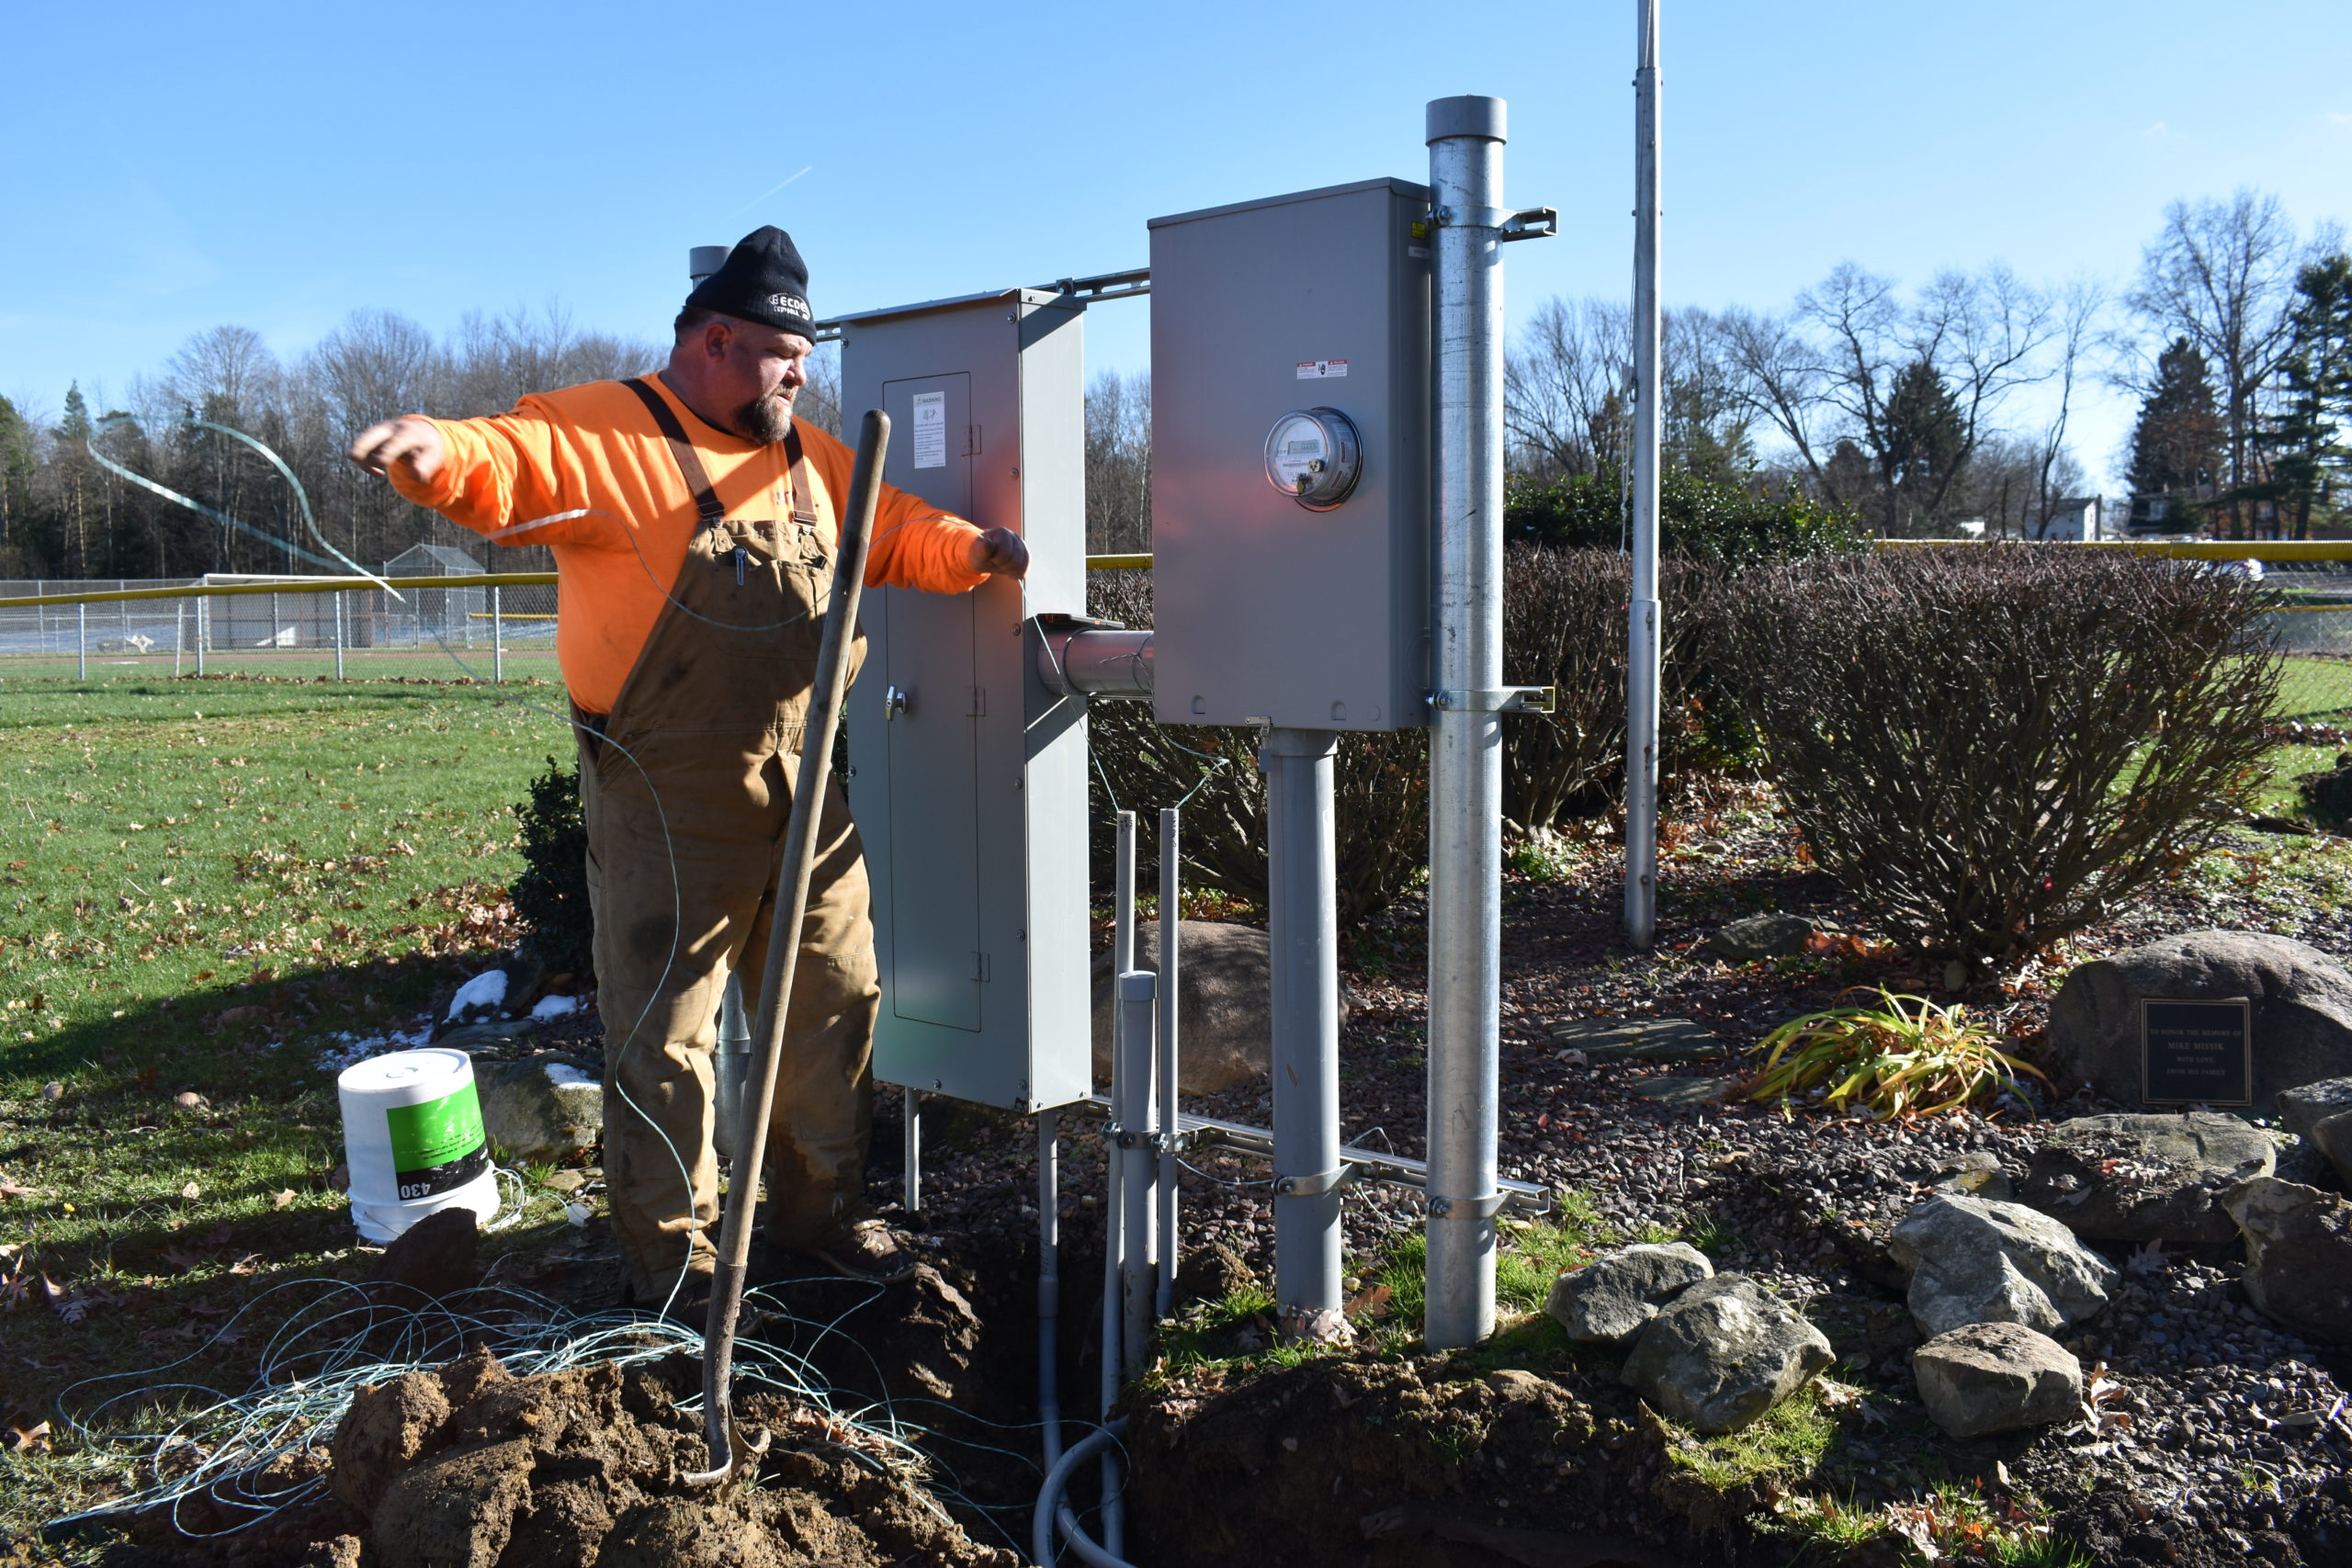 Jack Schell of Becdel Controls pulls wire through a conduit as part of the project to install cameras to monitor social distancing at Brookfield Township Community Park. The project was funded by a CARES Act appropriation.